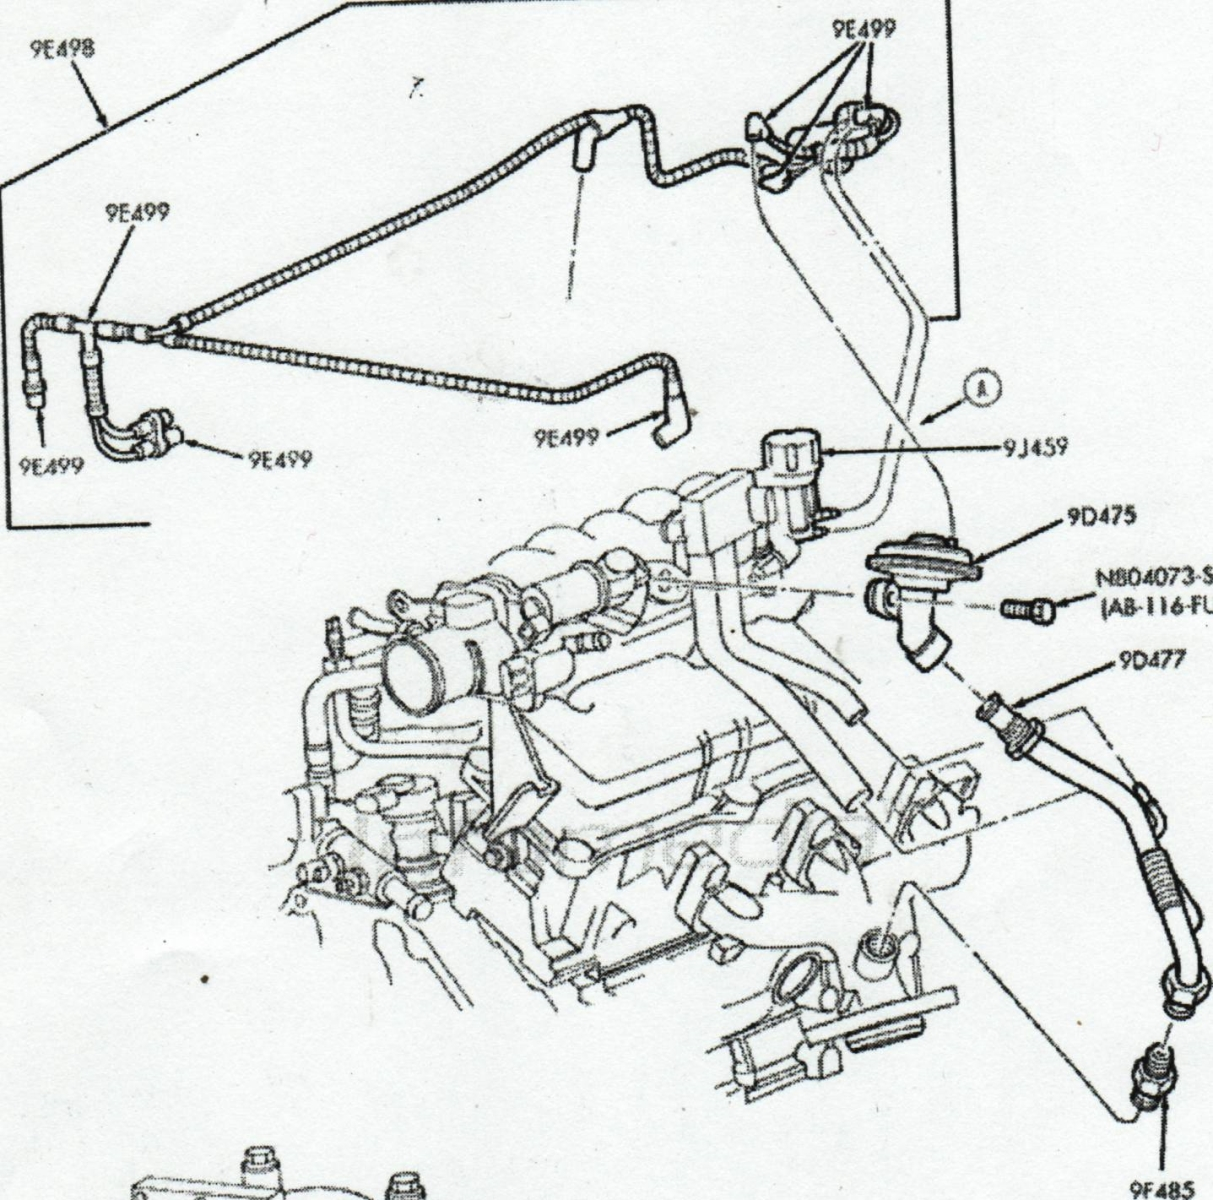 2003 taurus sel fuel tank question - page 2 - taurus car ... ford taurus 3 0 vacuum diagram